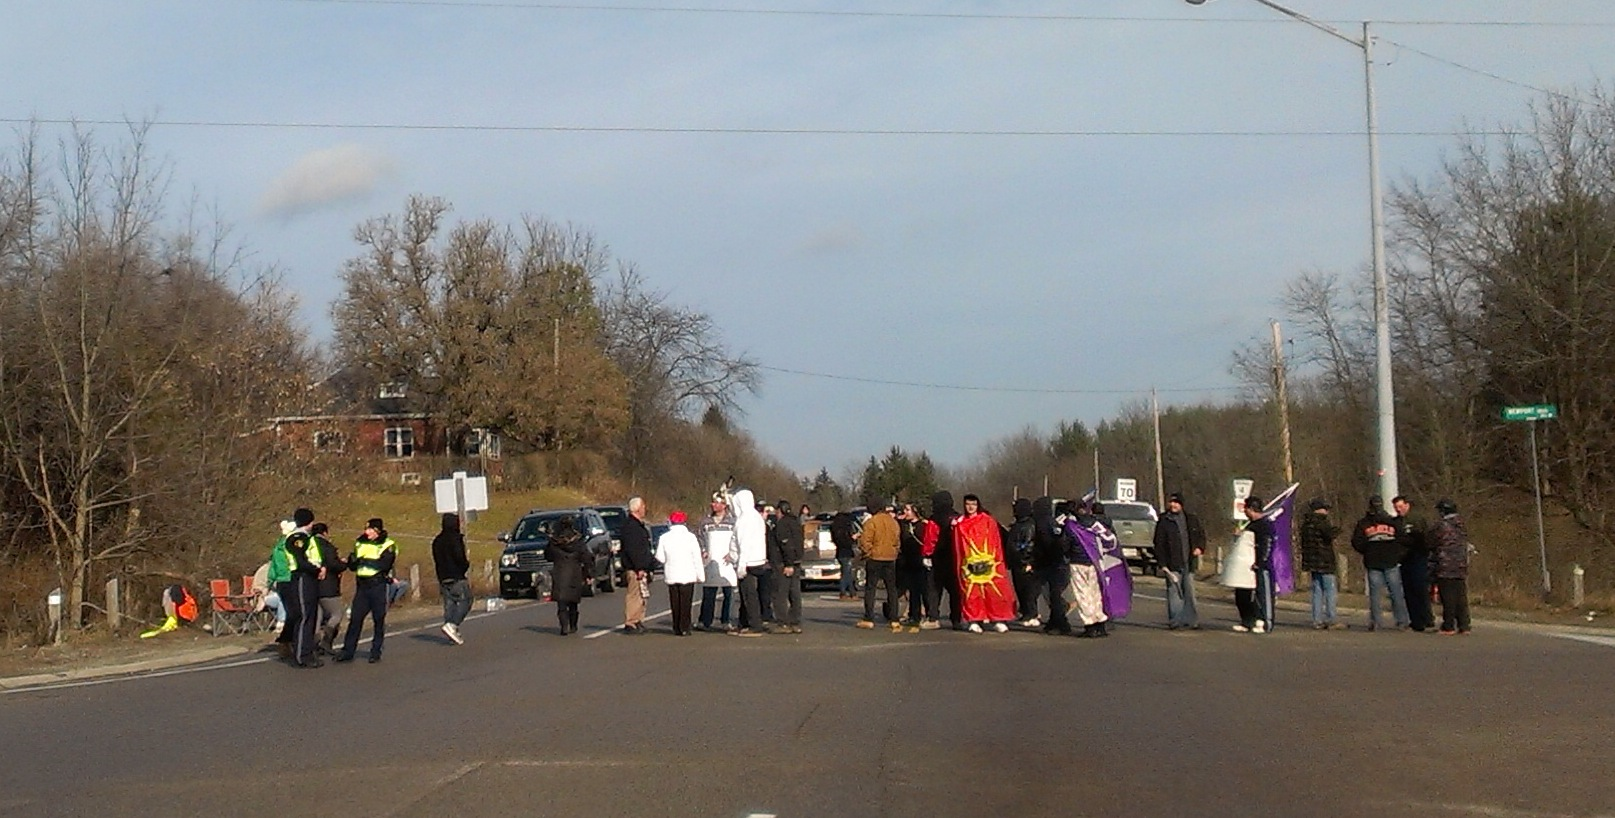 Protest on Cockshutt Rd by Six Nations